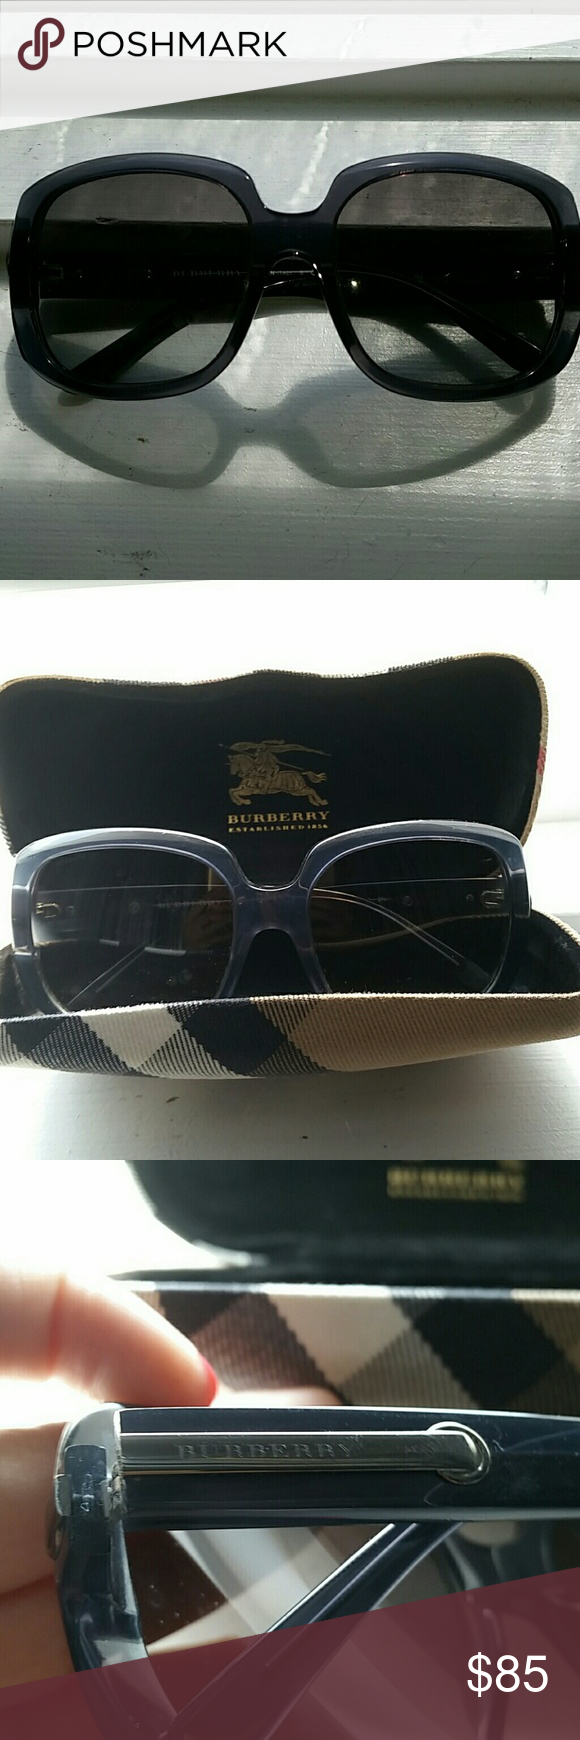 Authentic! Burberry Sunglasses AUTHENTIC! Blue Burberry Sunglasses with case. In perfect condition with no scratches NO LOW BALL OFFERS PLEASE! Burberry Accessories Sunglasses